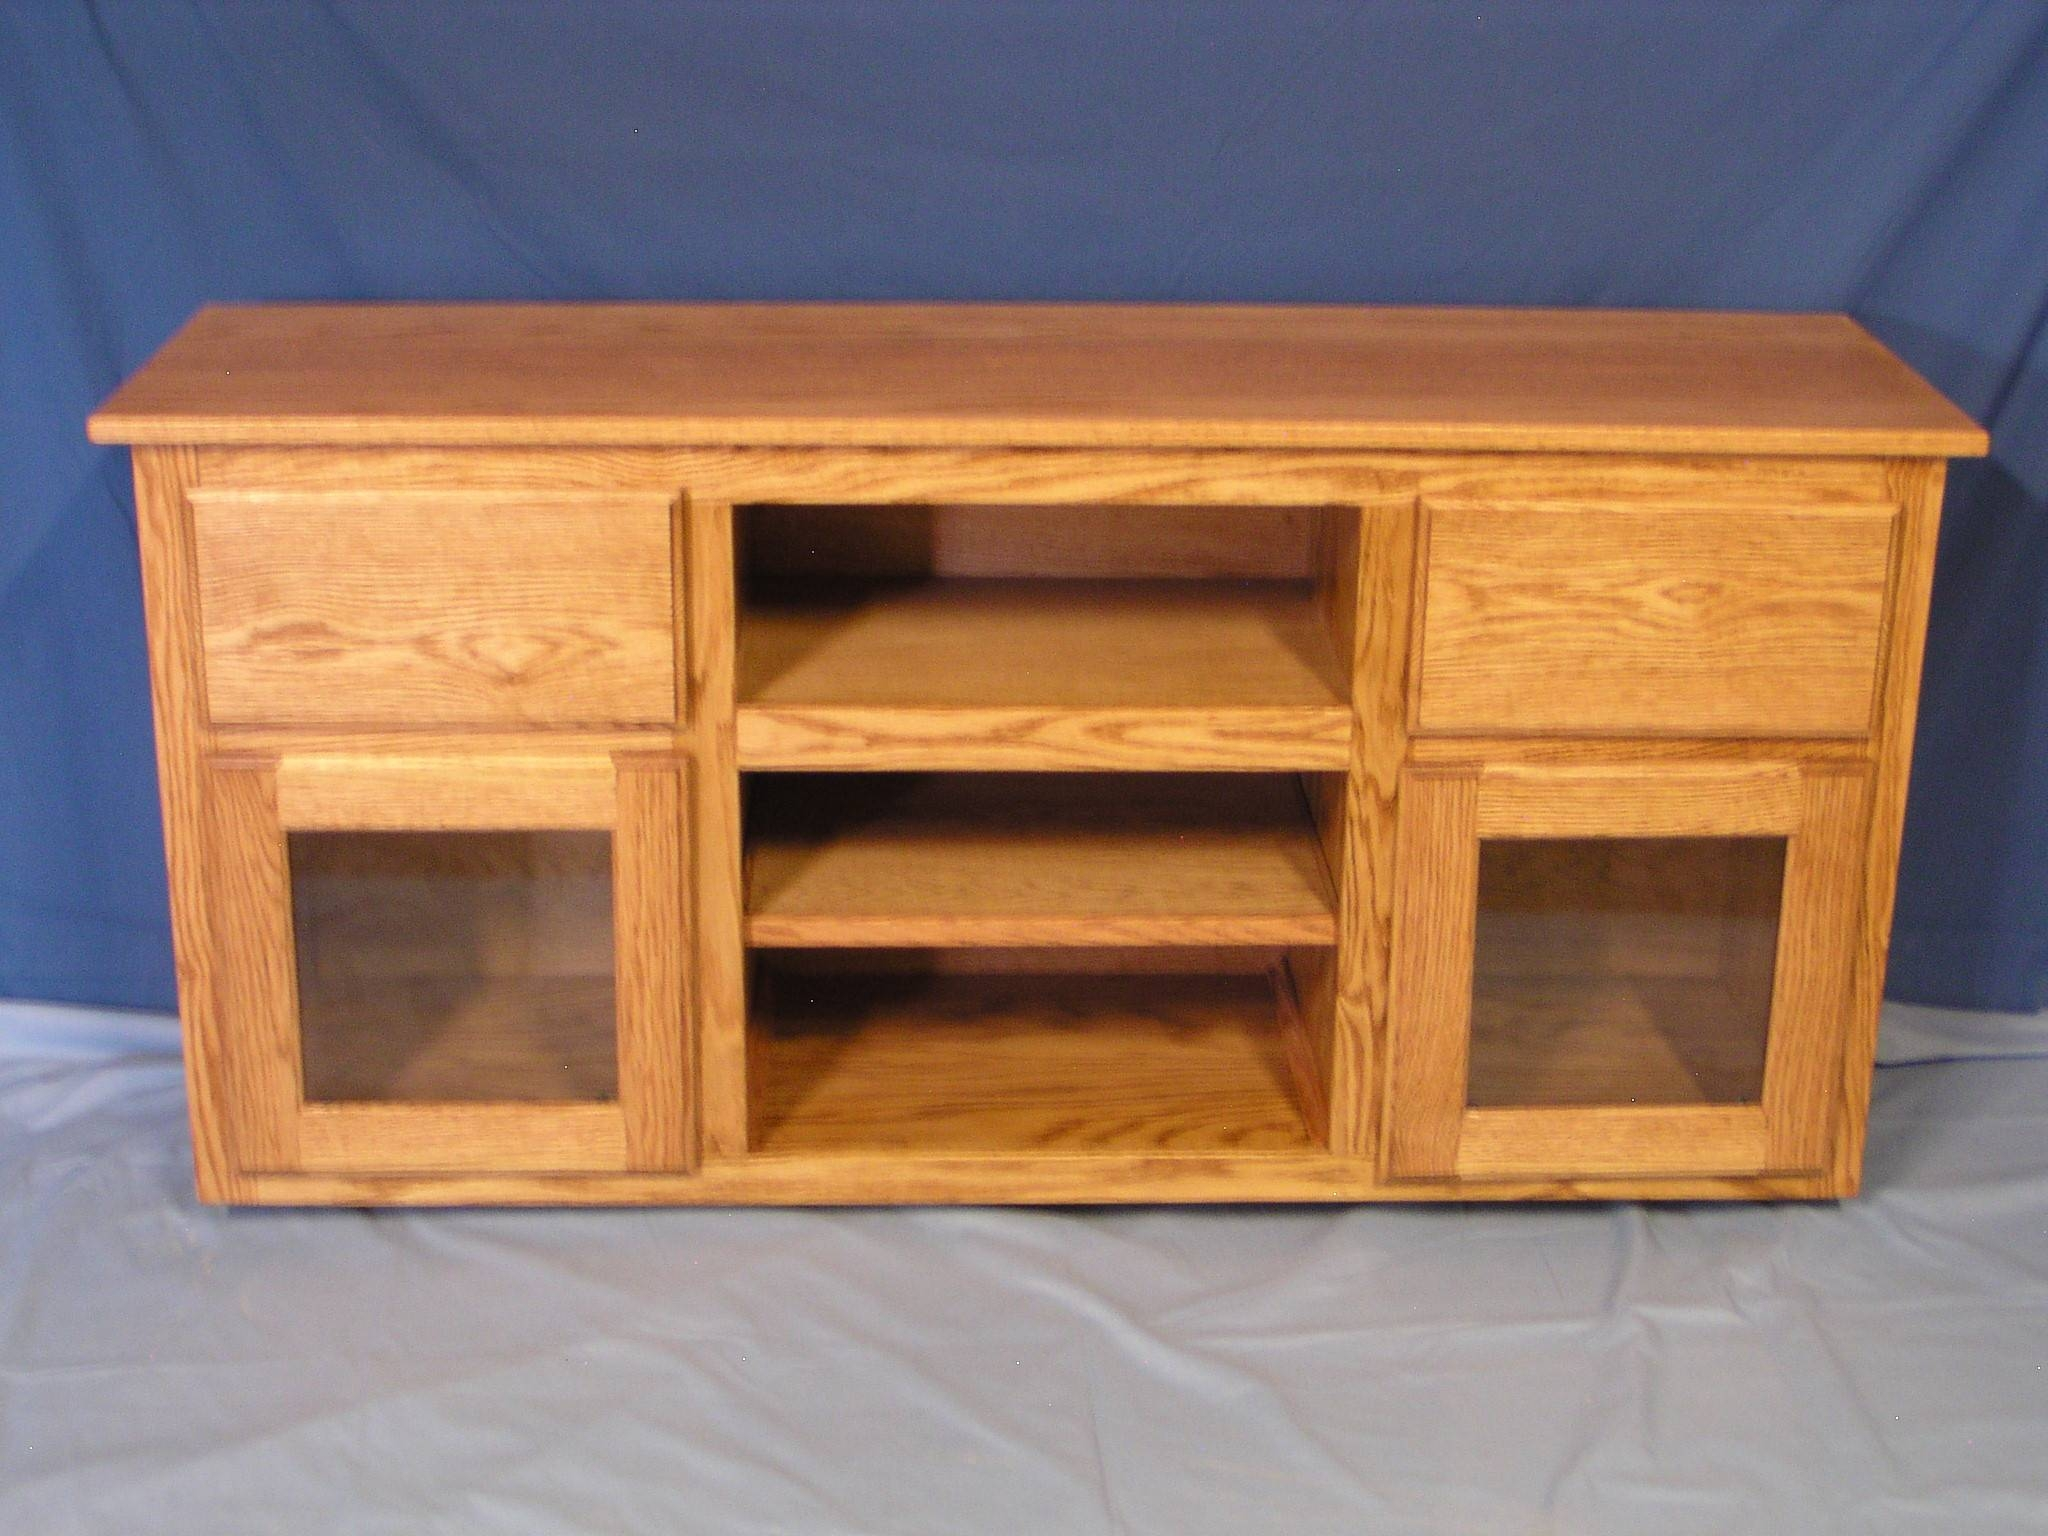 Furniture | Twisted Oak Custom Woodworks intended for Oak Tv Cabinets For Flat Screens With Doors (Image 3 of 15)